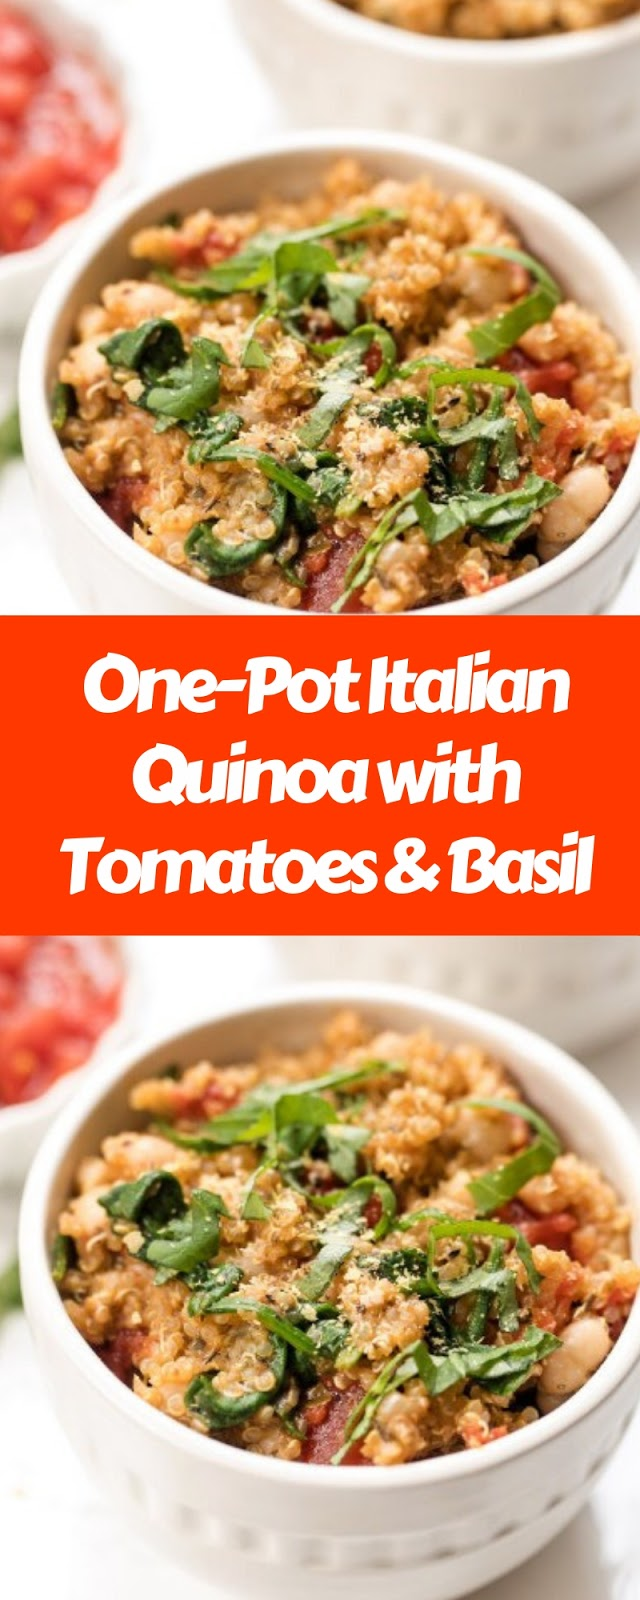 One-Pot Italian Quinoa with Tomatoes and Basil